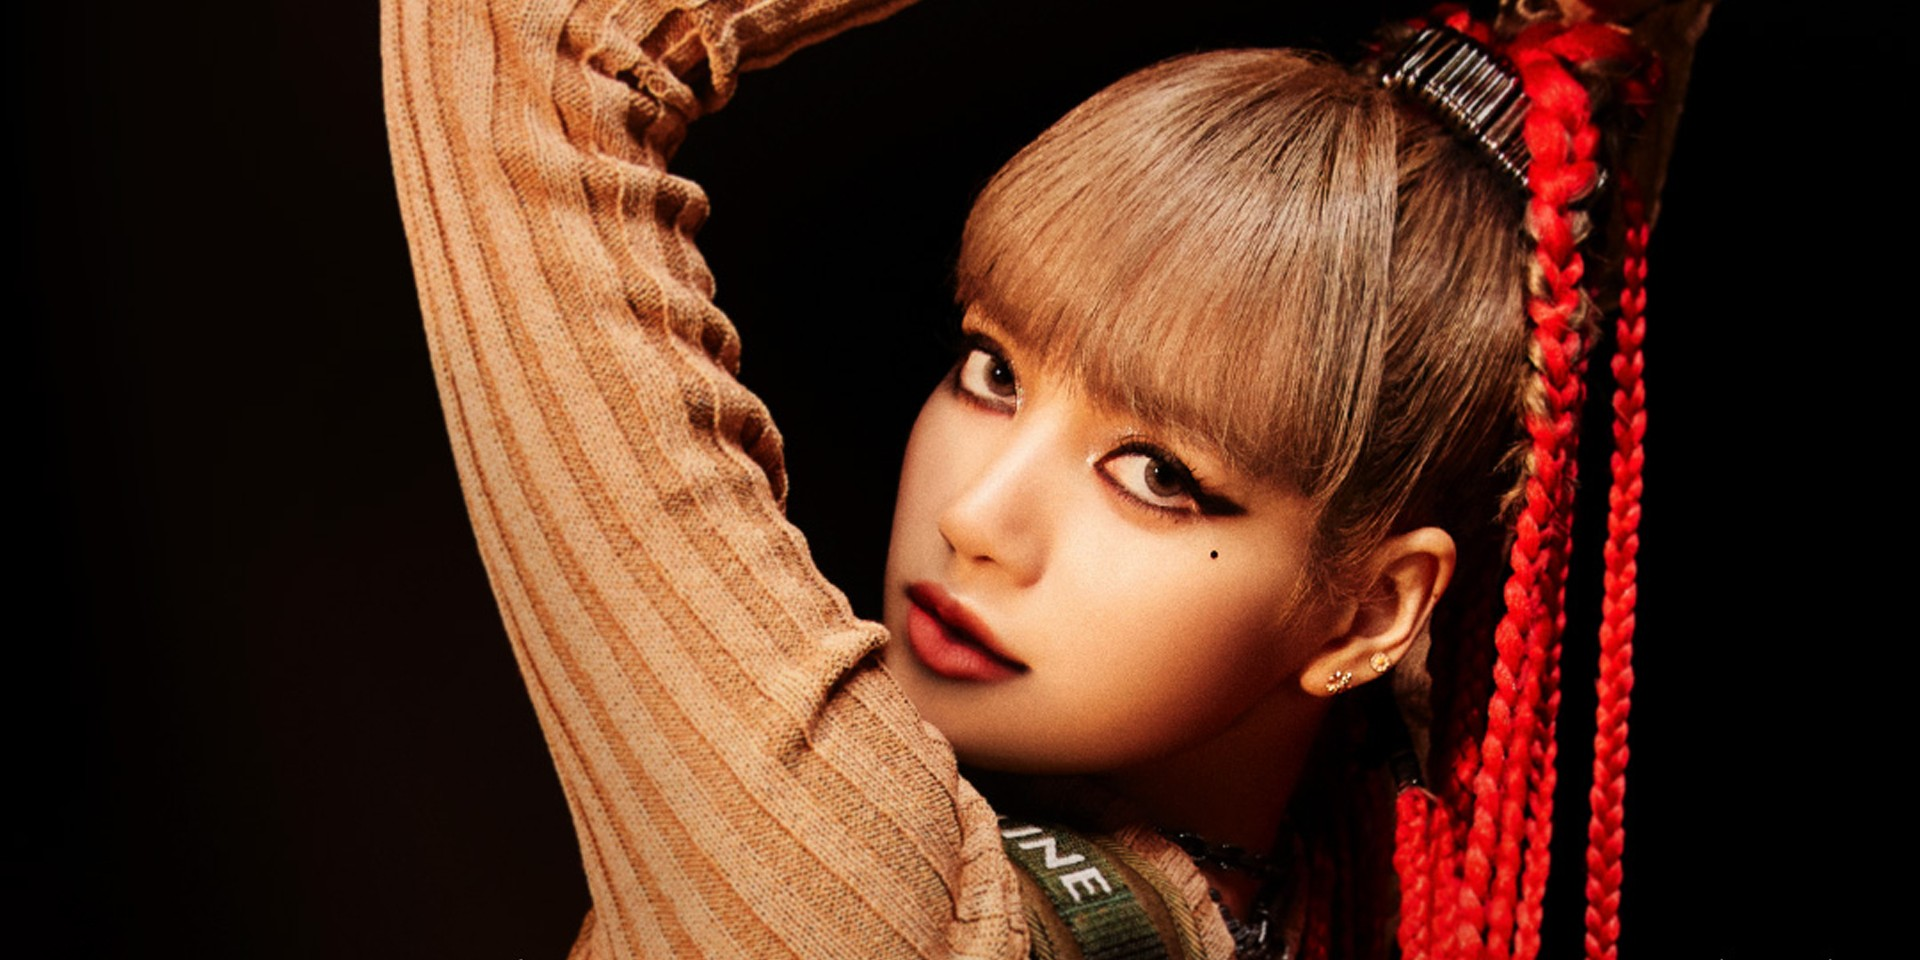 BLACKPINK's LISA to drop live performance video of 'MONEY' this week